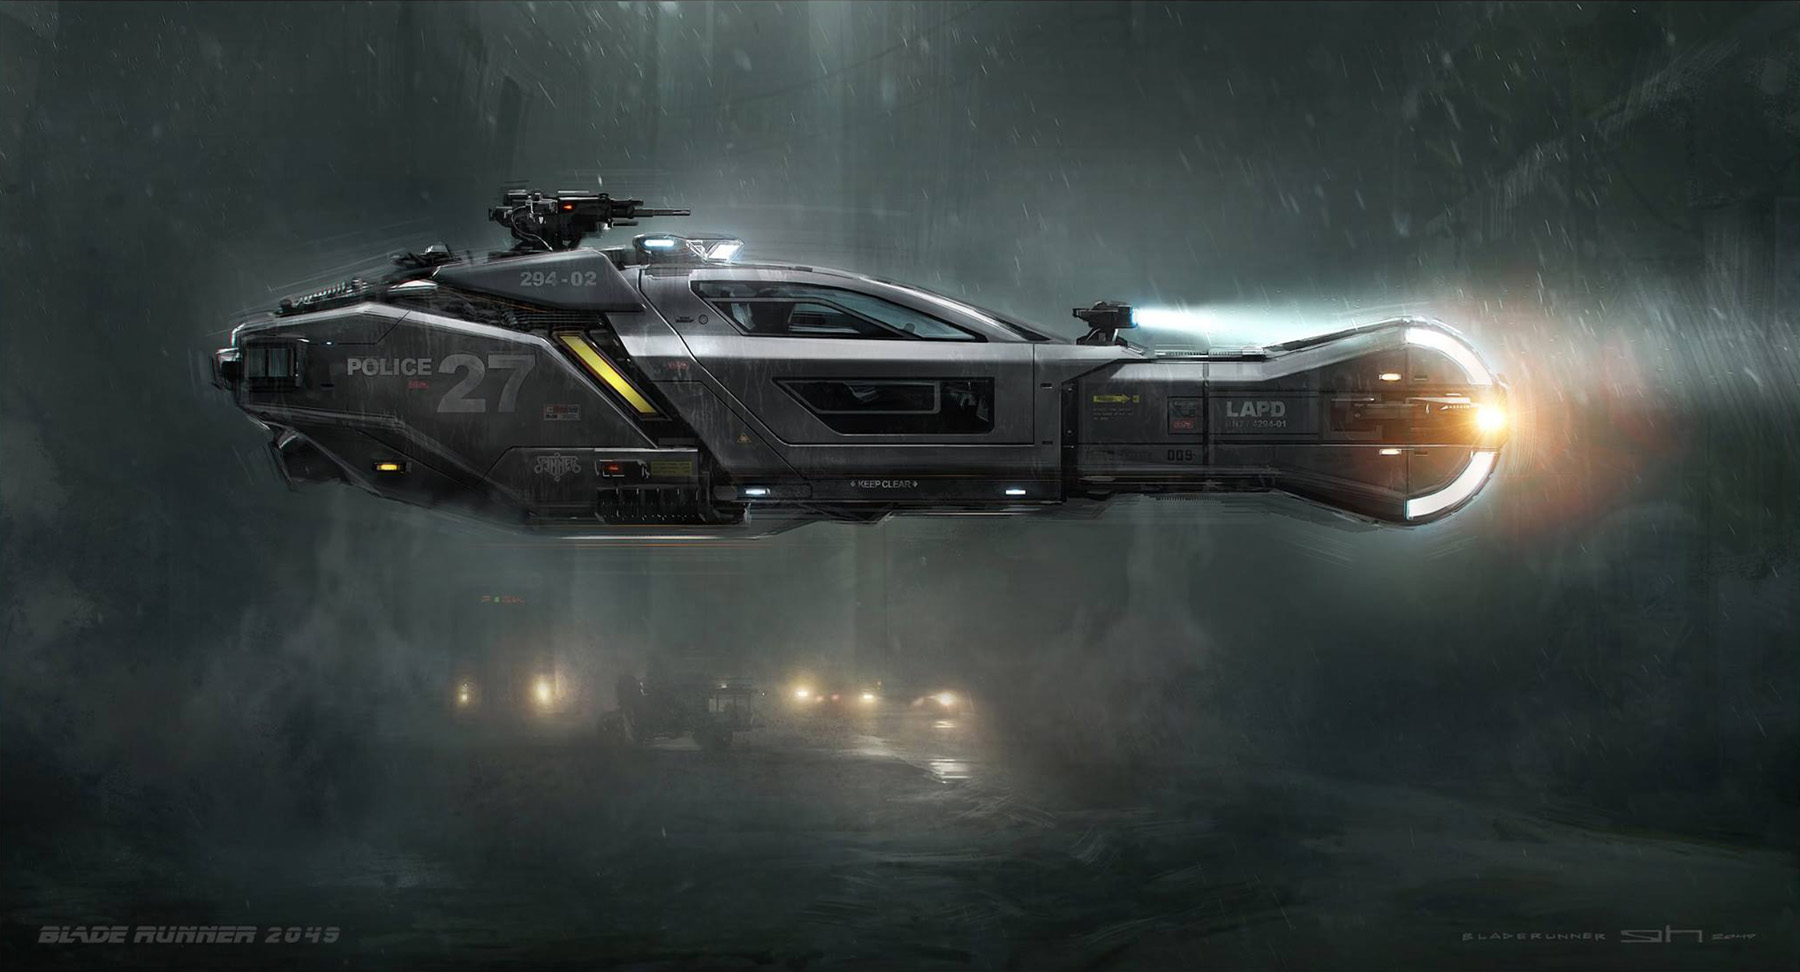 concept ships police spinner from blade runner 2049 by george hull. Black Bedroom Furniture Sets. Home Design Ideas